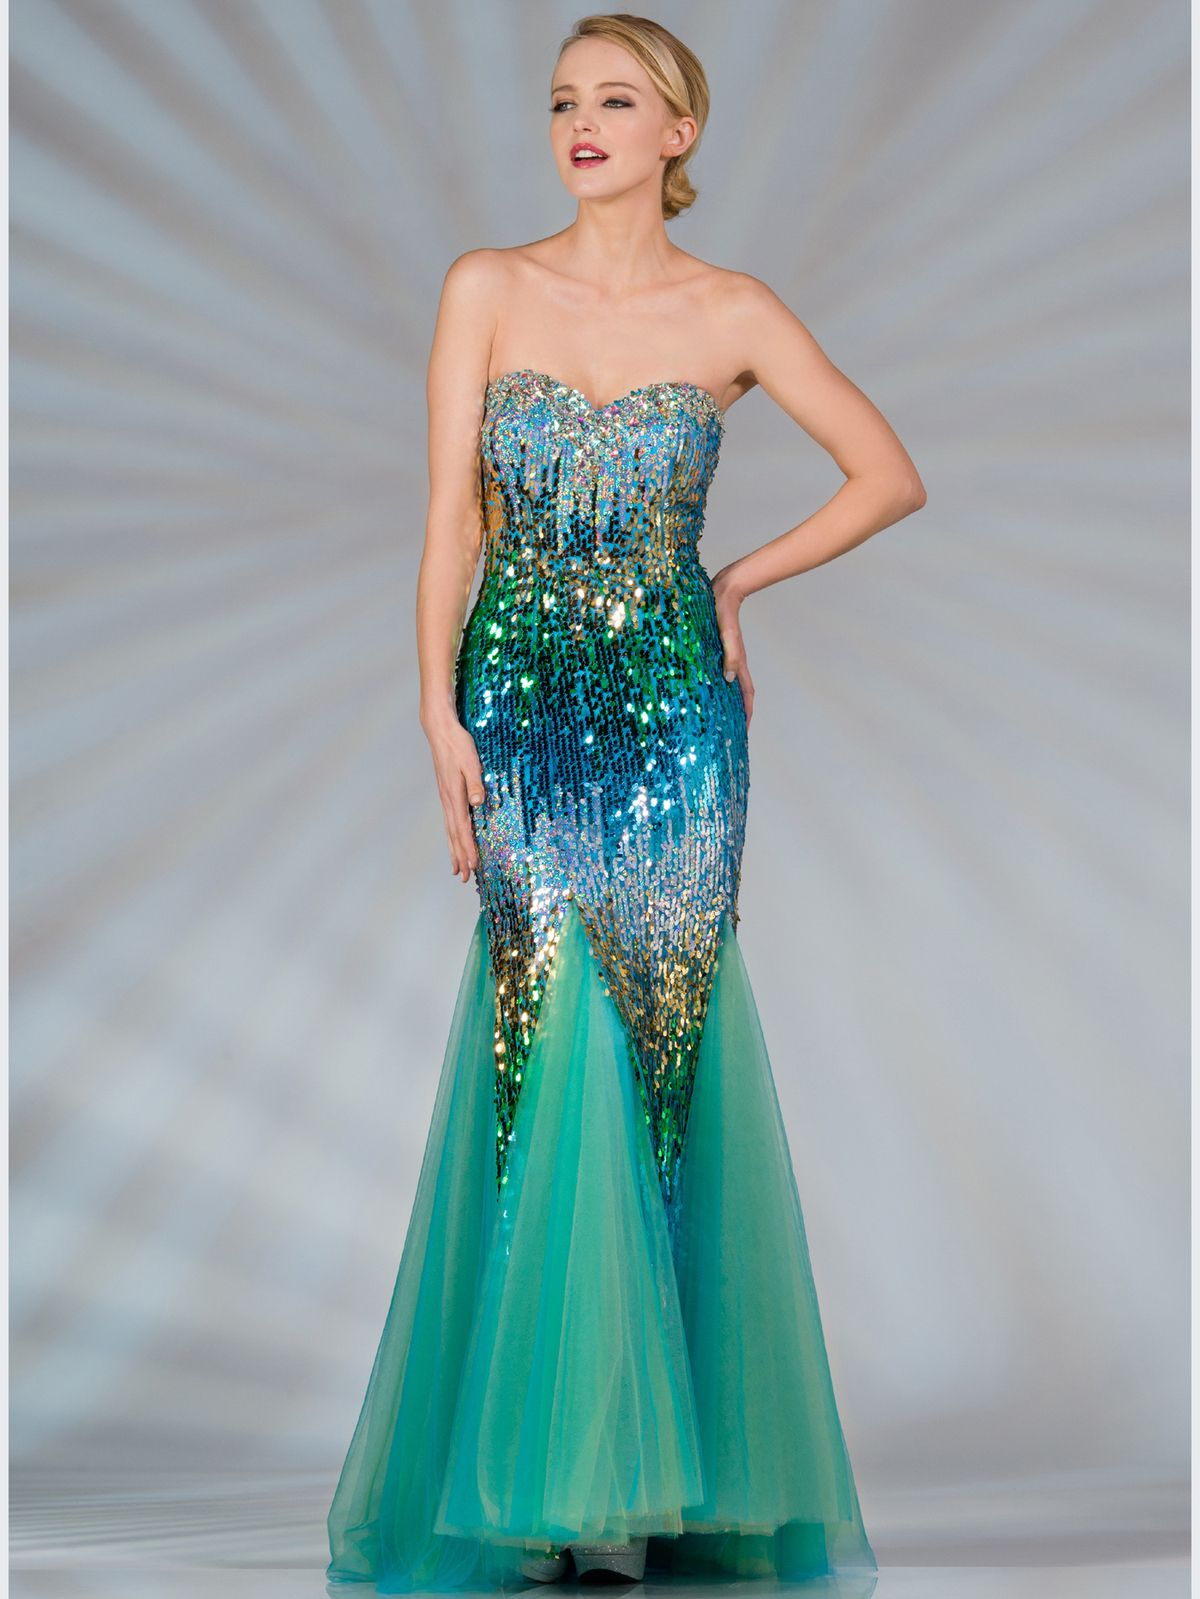 Blue And Green Sequin Mermaid Prom Dress. Style # Jc2517